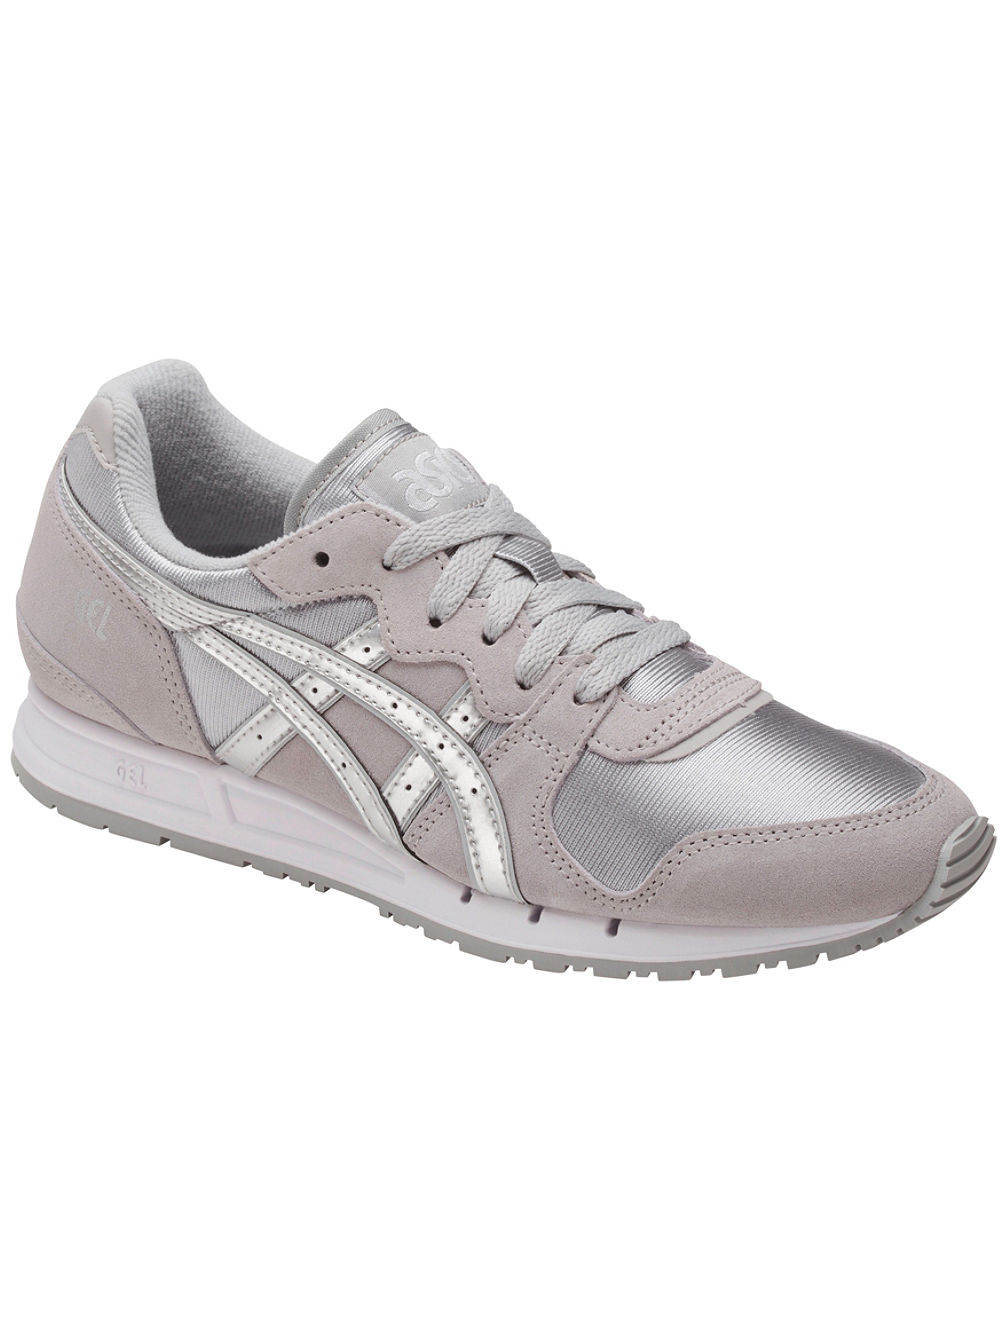 Gel-Movimentum Sneakers Women